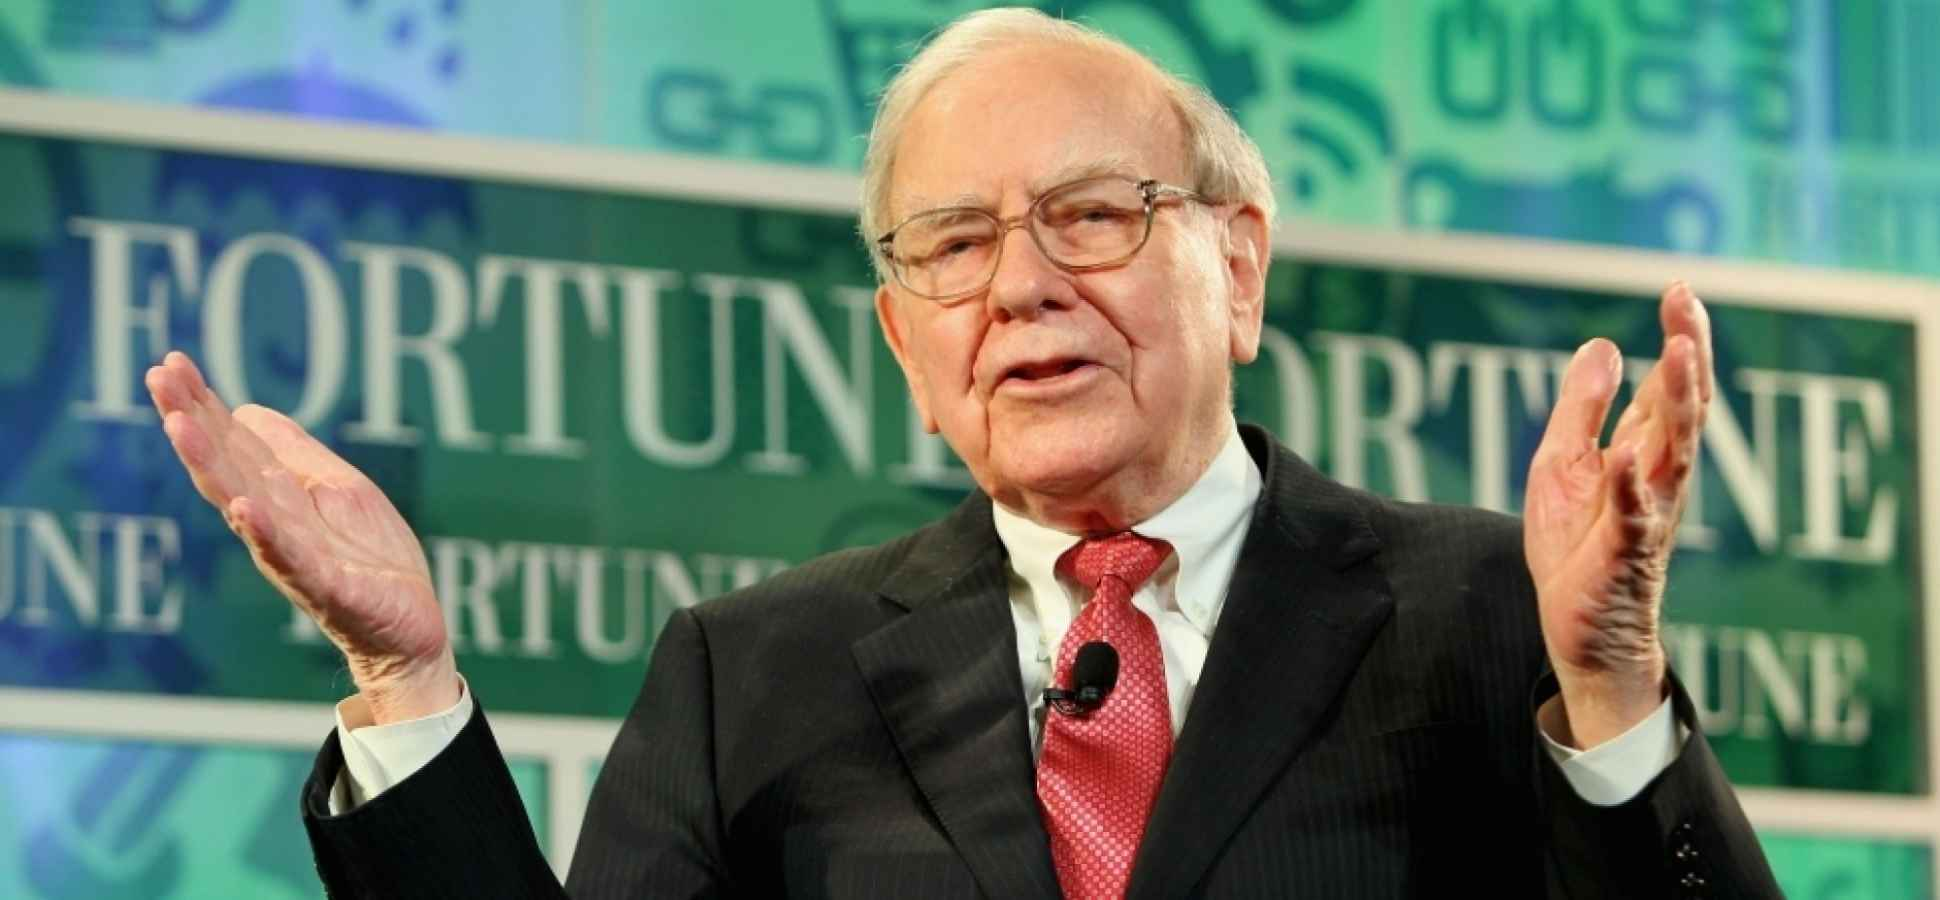 12 Life Lessons We Can Learn From Warren Buffett